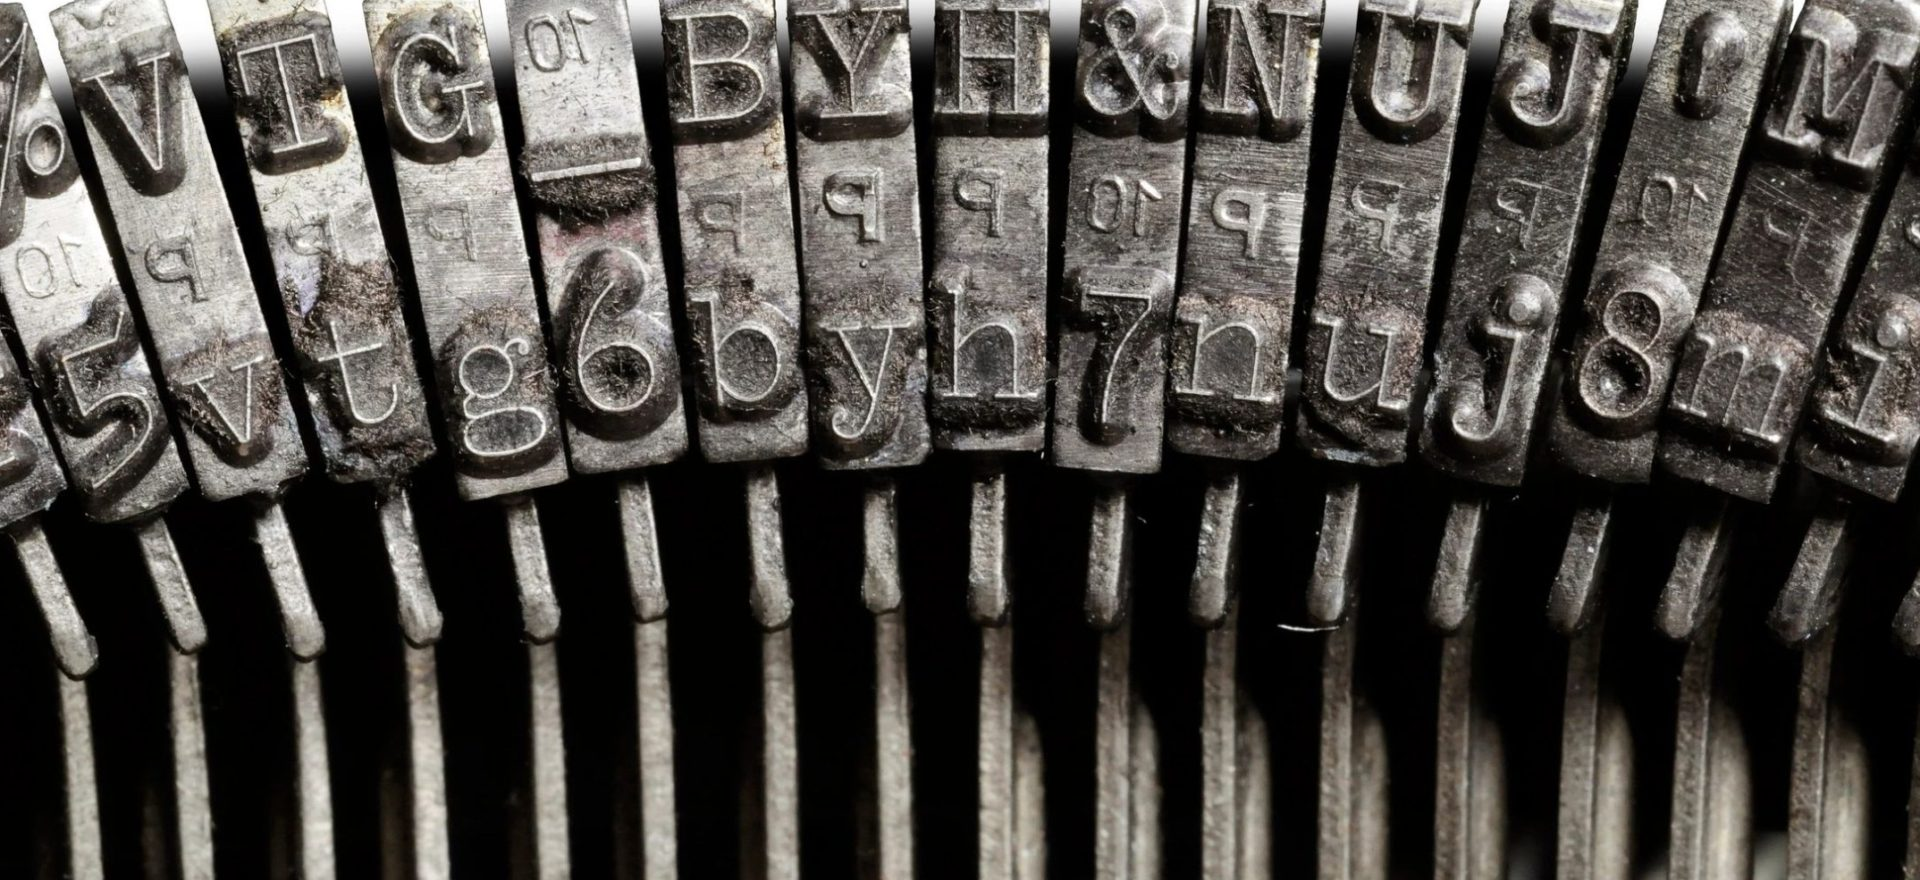 close-up of the inside of typewriter stamps